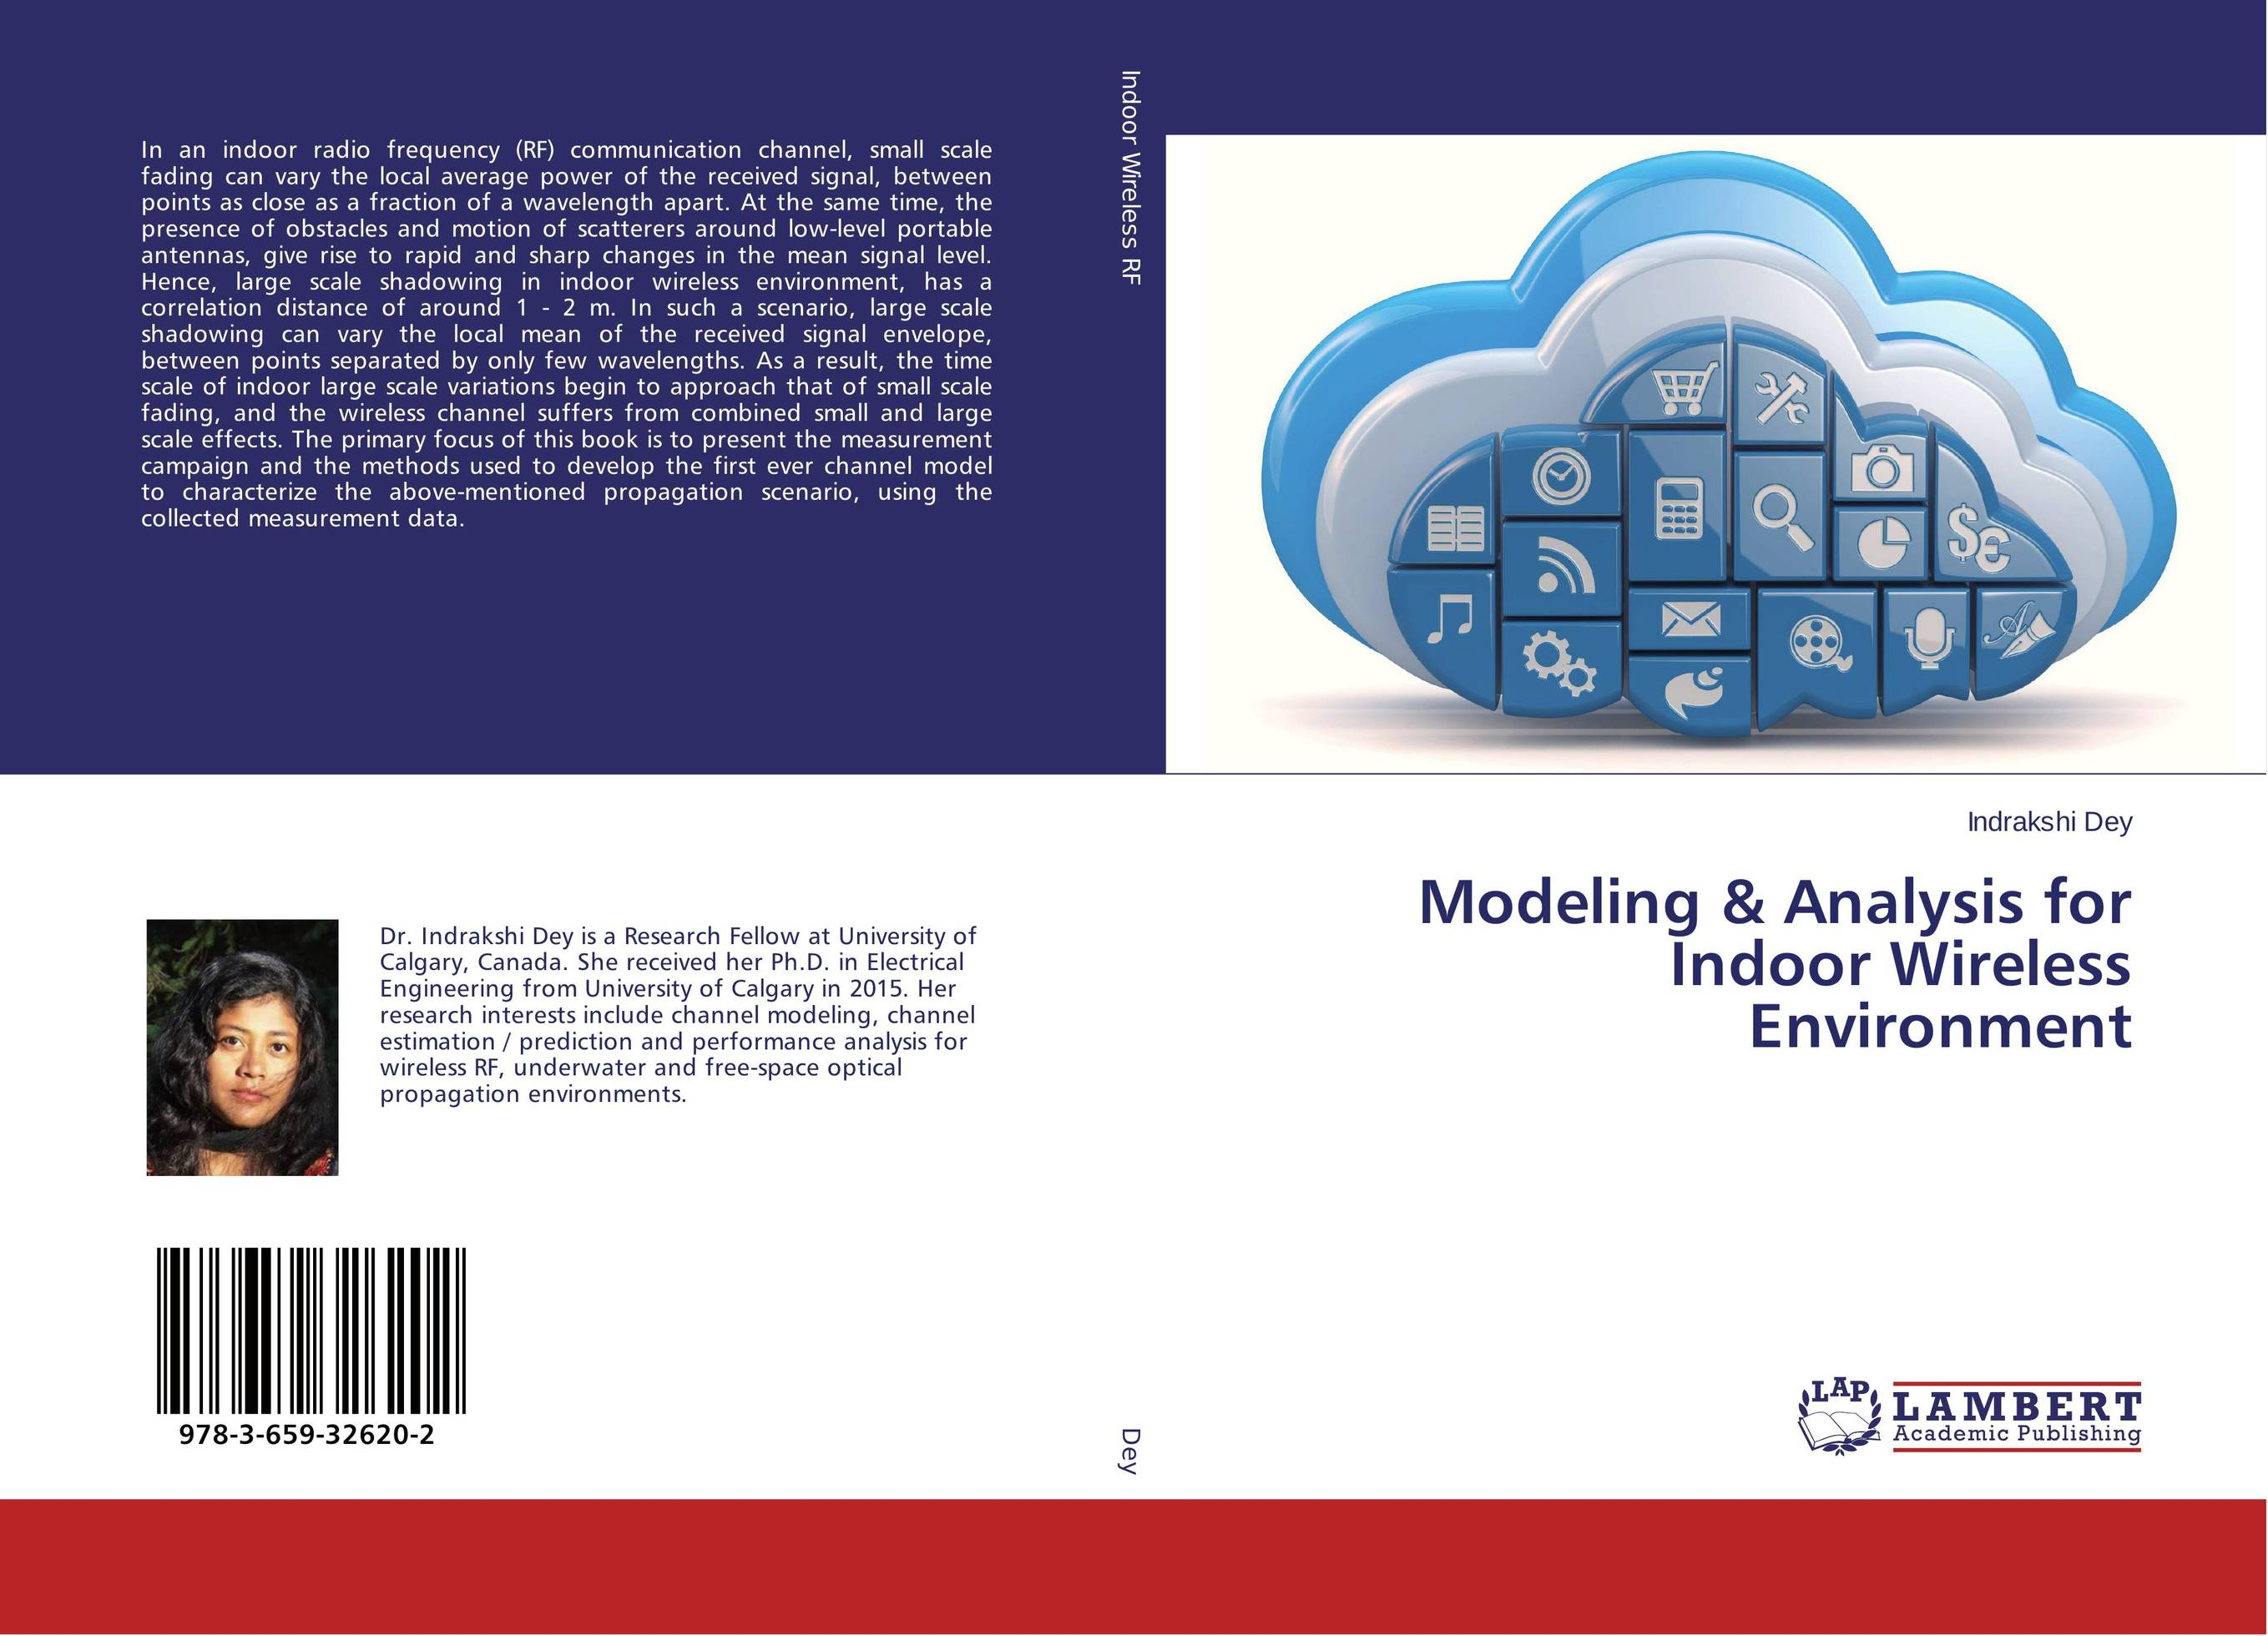 Modeling & Analysis for Indoor Wireless Environment microsimulation modeling of ict policies at firm level